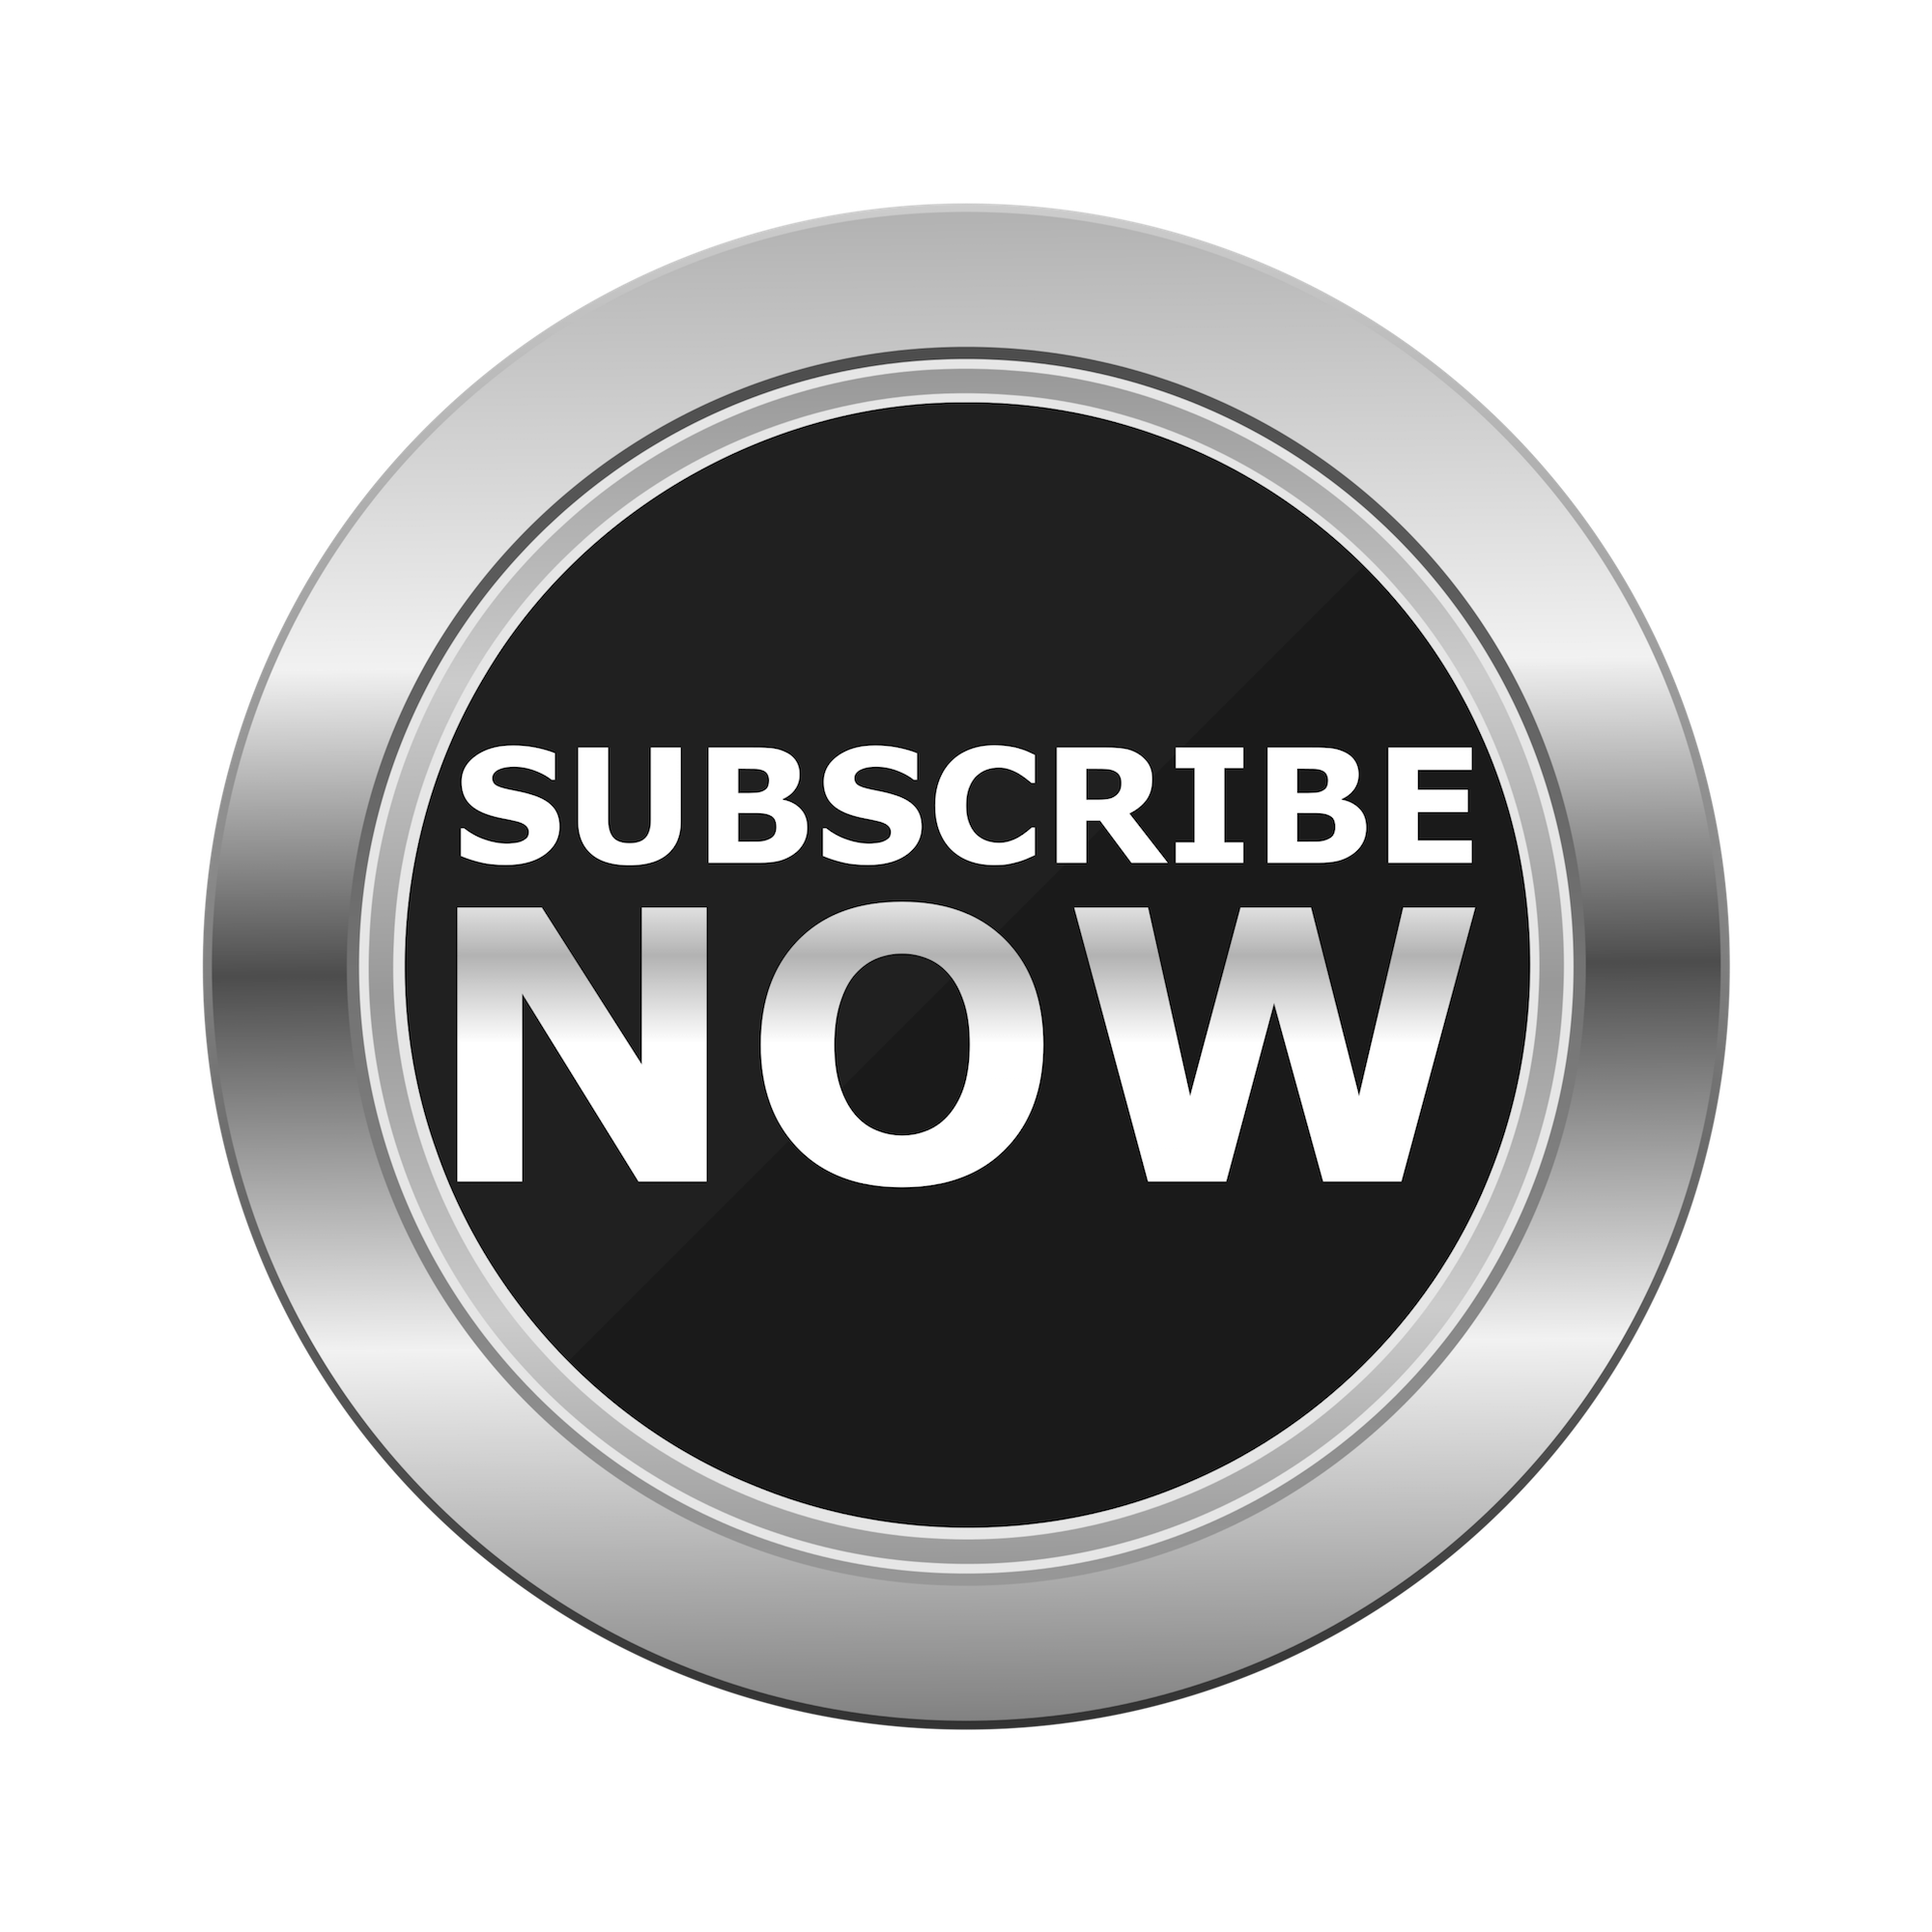 subscribe now circle button hd silver design #33286